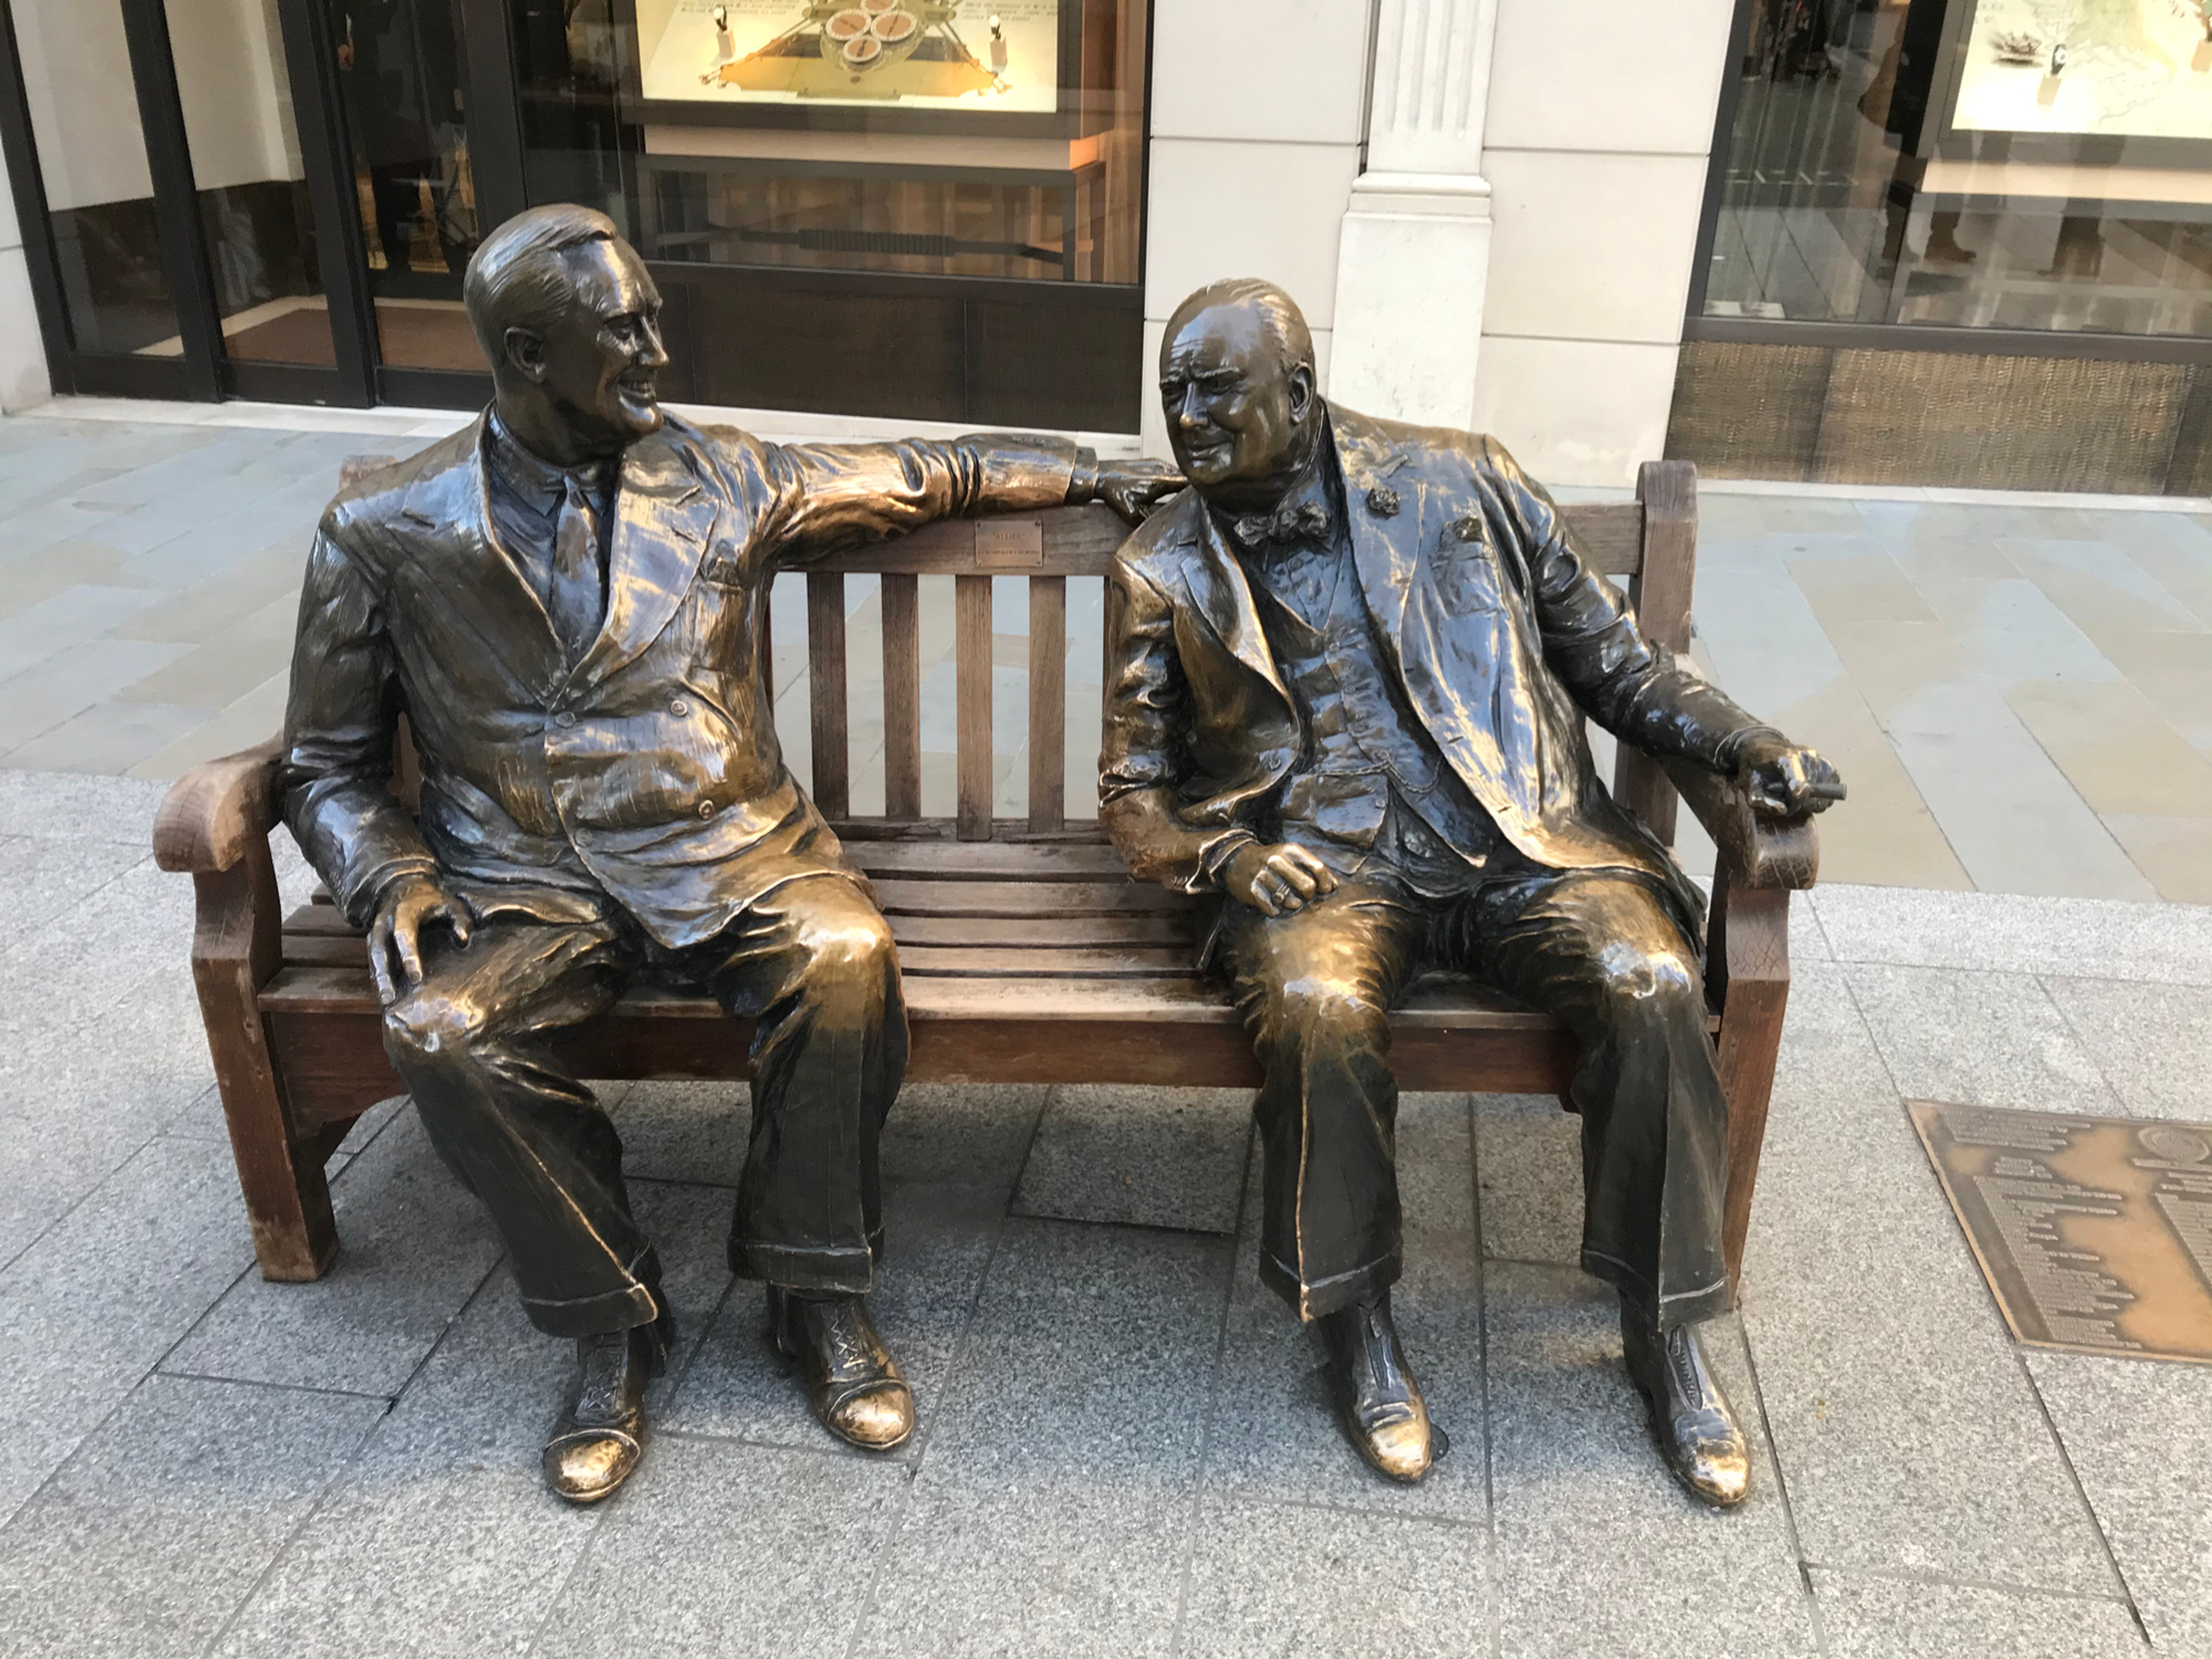 They Came Back: Americans in Mayfair